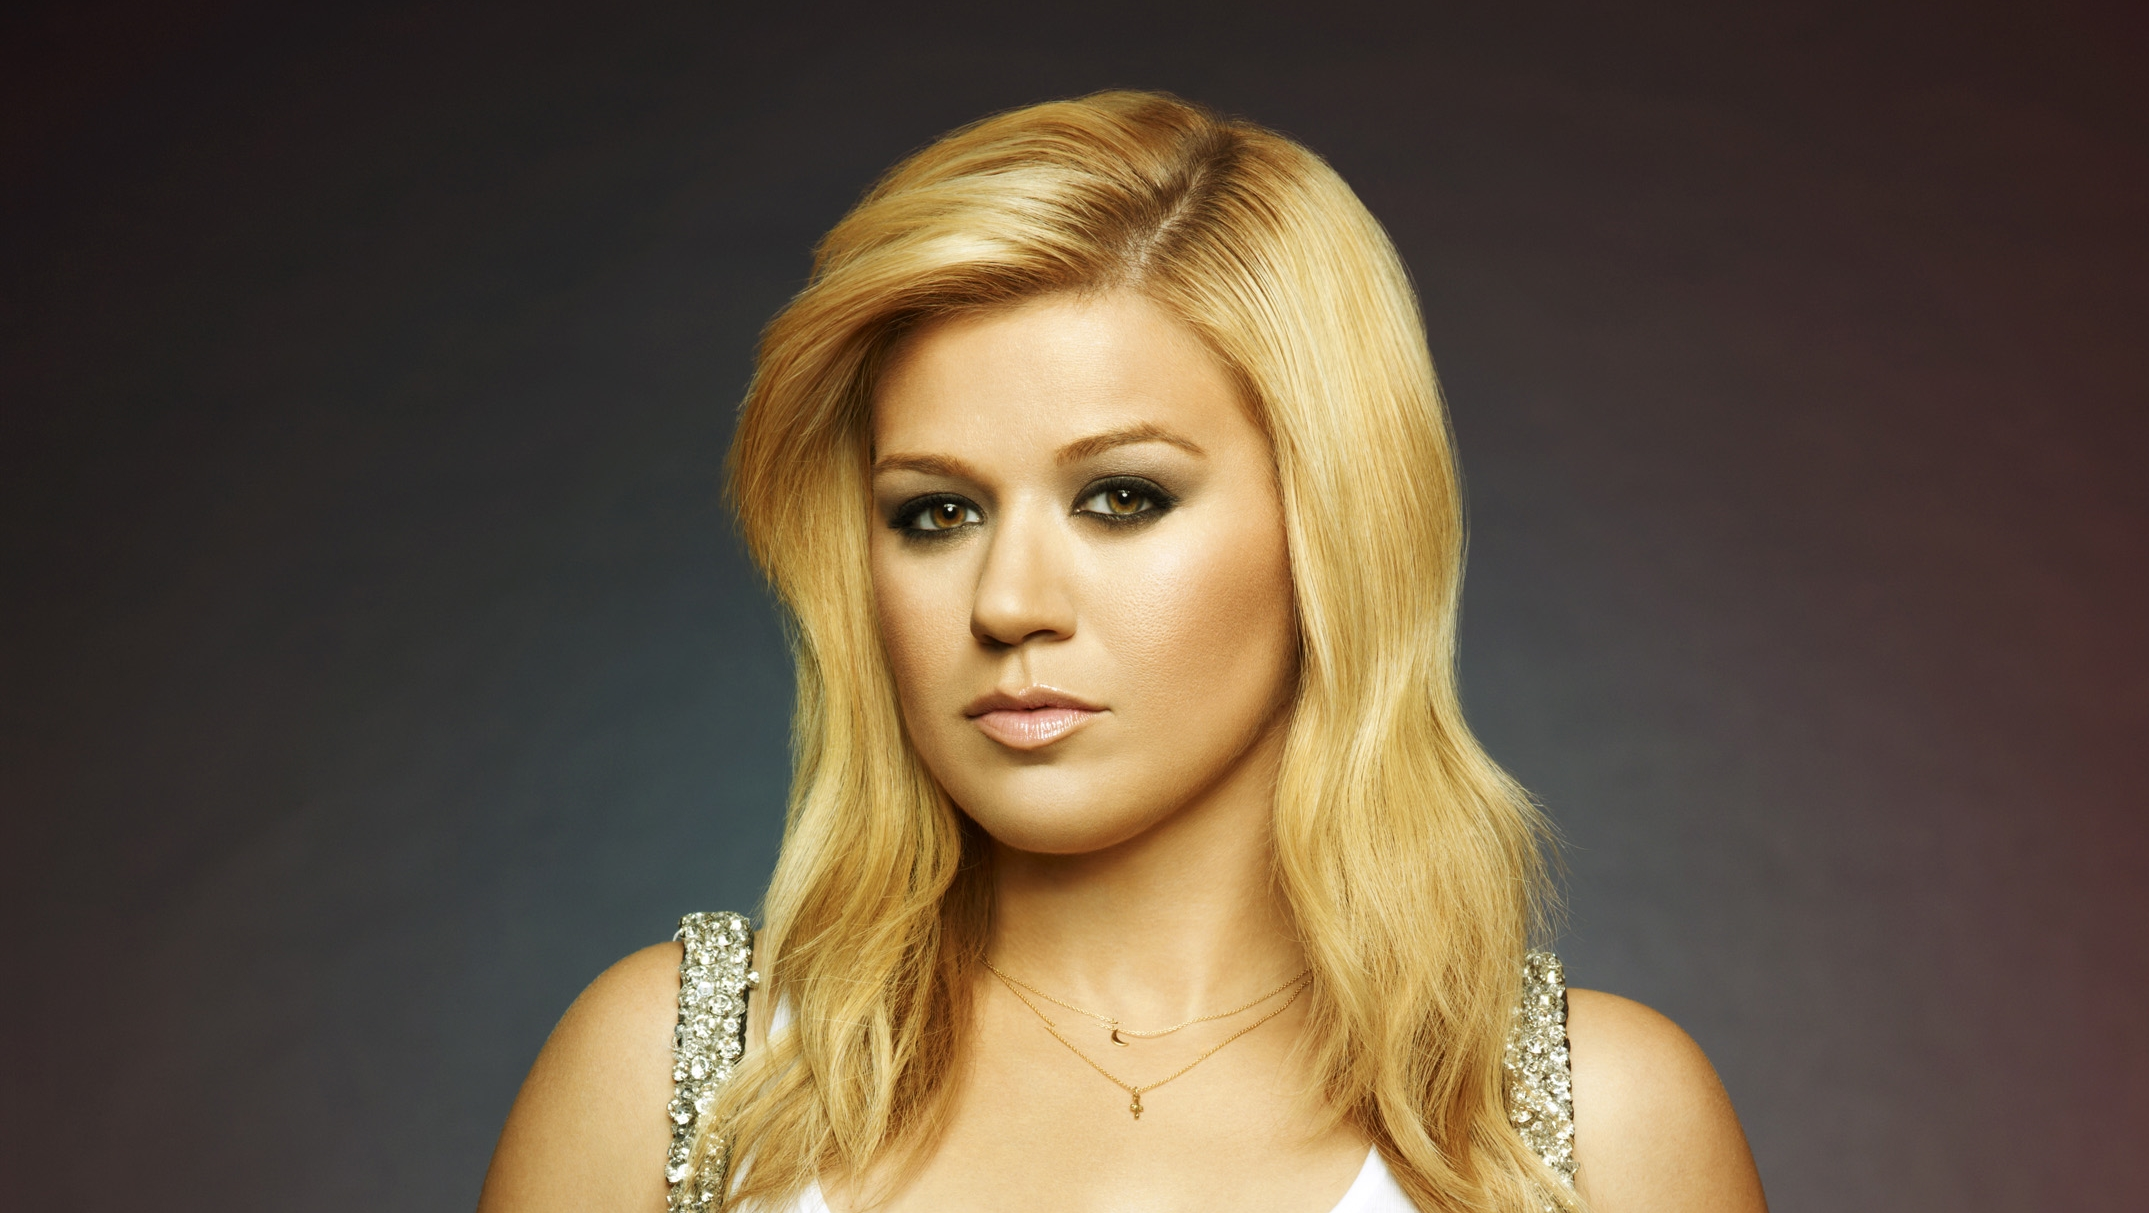 Kelly Clarkson Net Worth